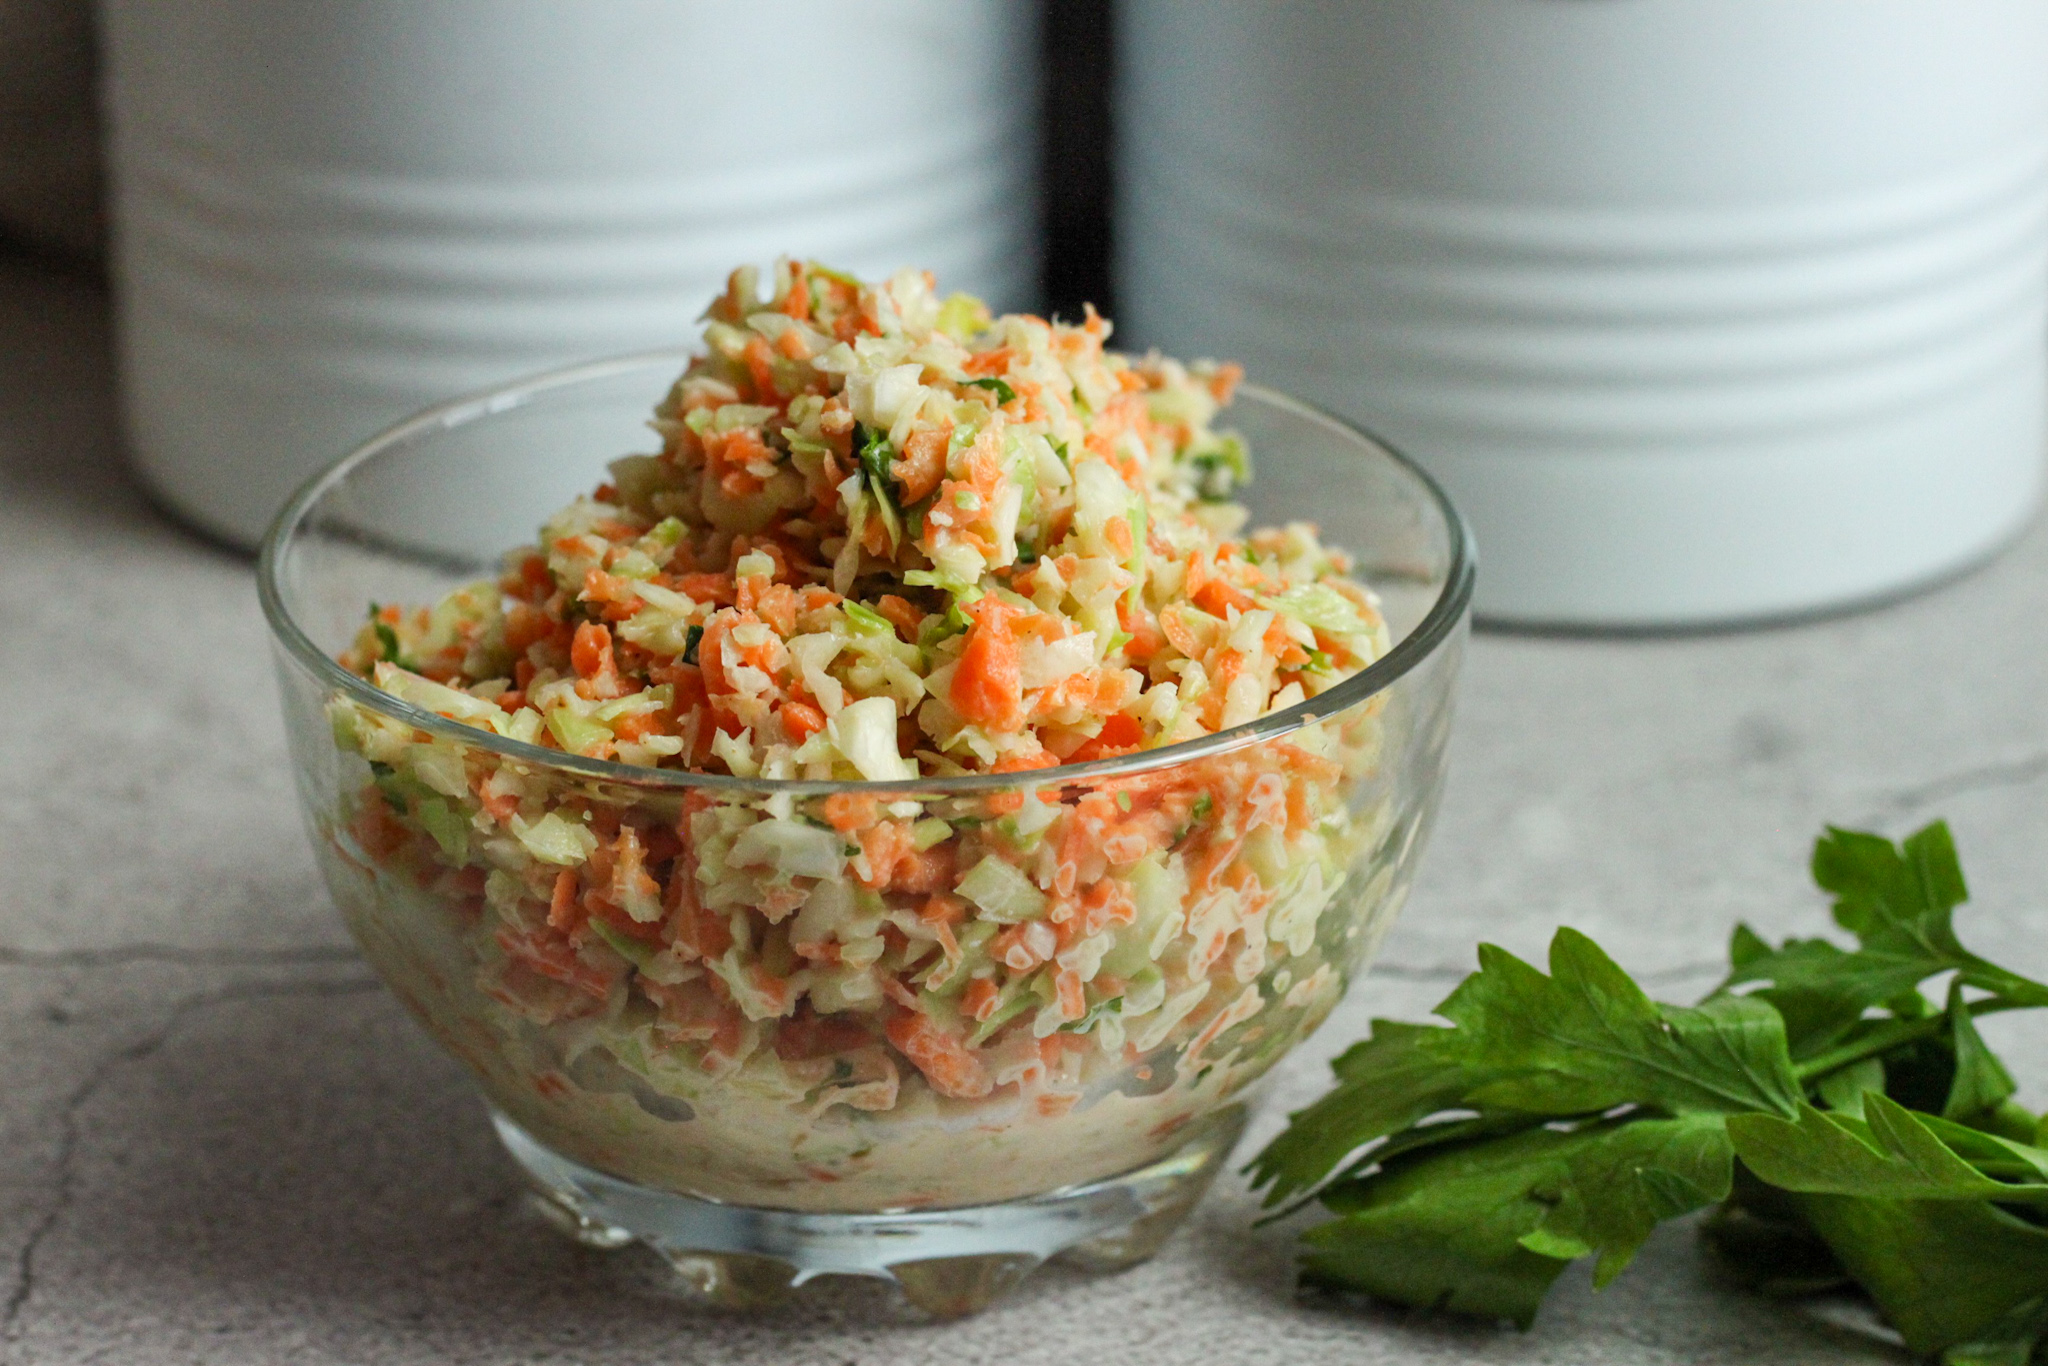 How to make Coleslaw the Right Way